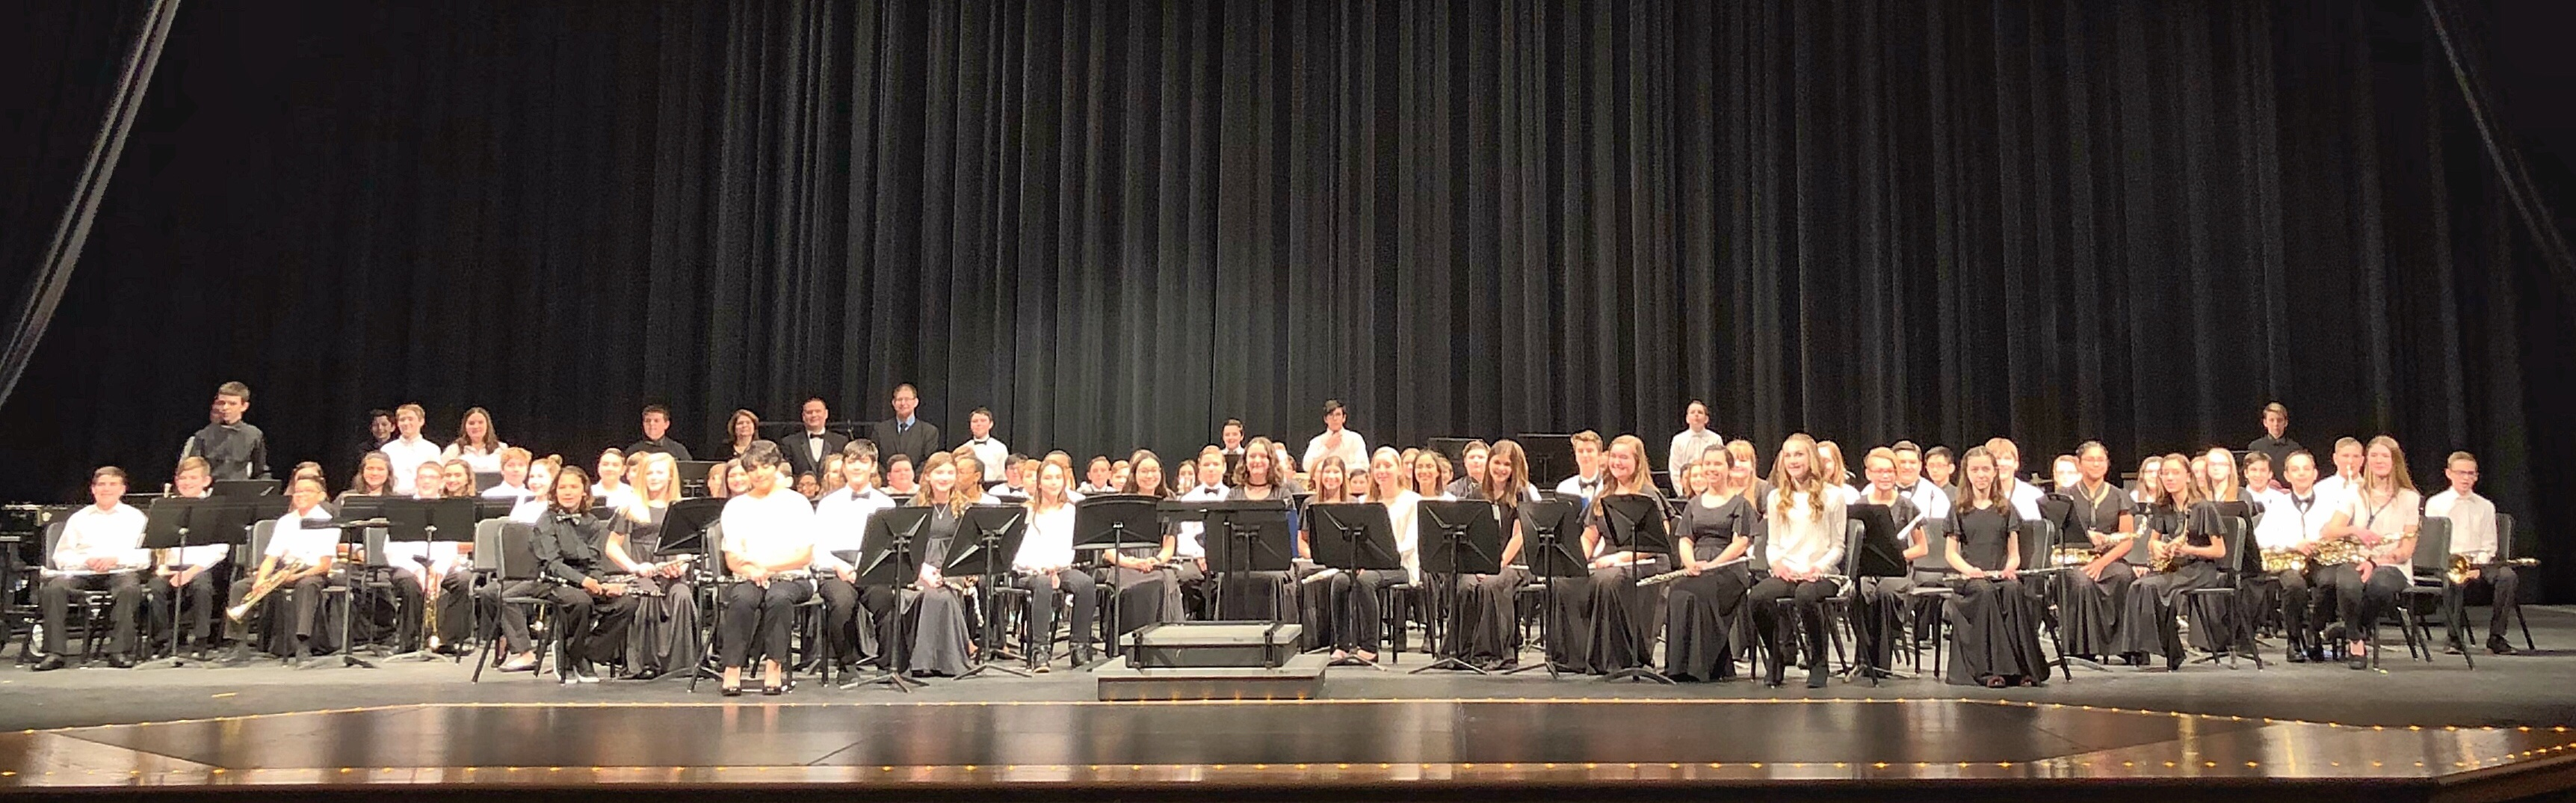 The middle school honor band under the direction of Mr. Walton, Mr. Lewis and Mrs. Lopez entertained the crowd with 6 energetic numbers on January 19, 2019.